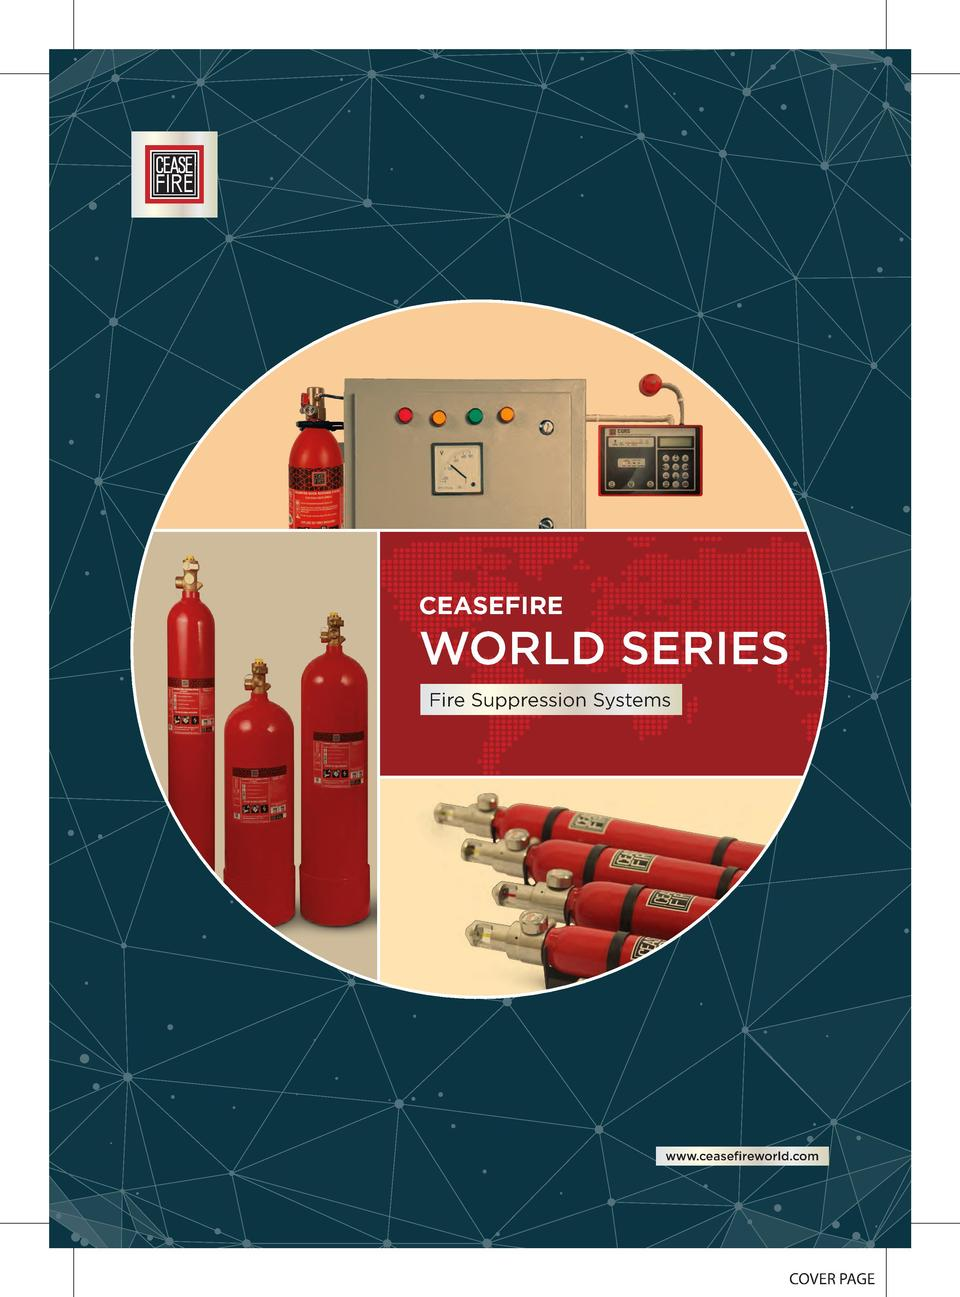 CEASEFIRE  WORLD SERIES Fire Suppression Systems  www.ceasefireworld.com  COVER PAGE